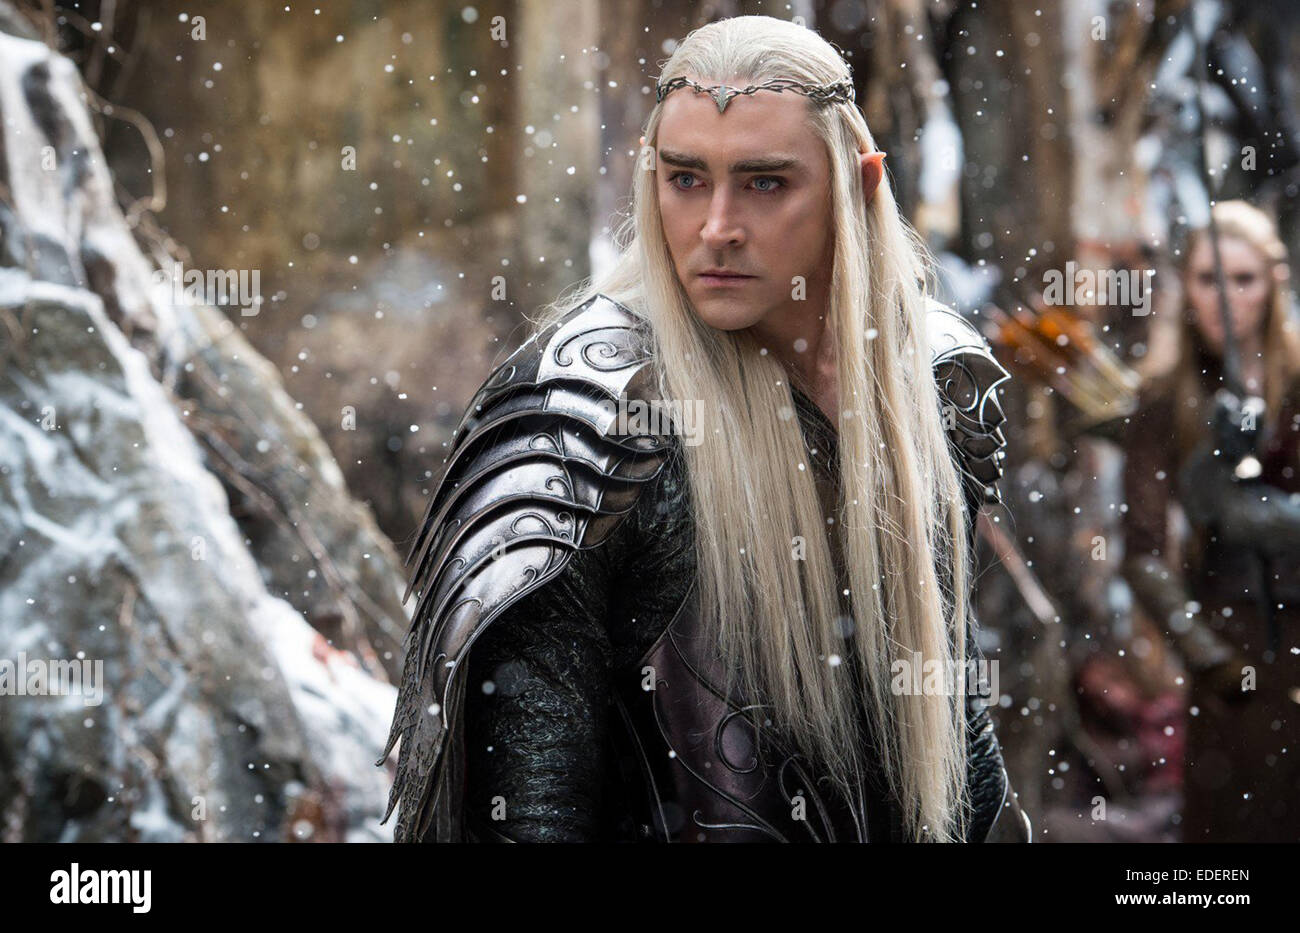 THE HOBBIT: THE BATTLE OF THE FIVE ARMIES (2014) LEE PACE PETER JACKSON (DIR) MOVIESTORE COLLECTION LTD - Stock Image